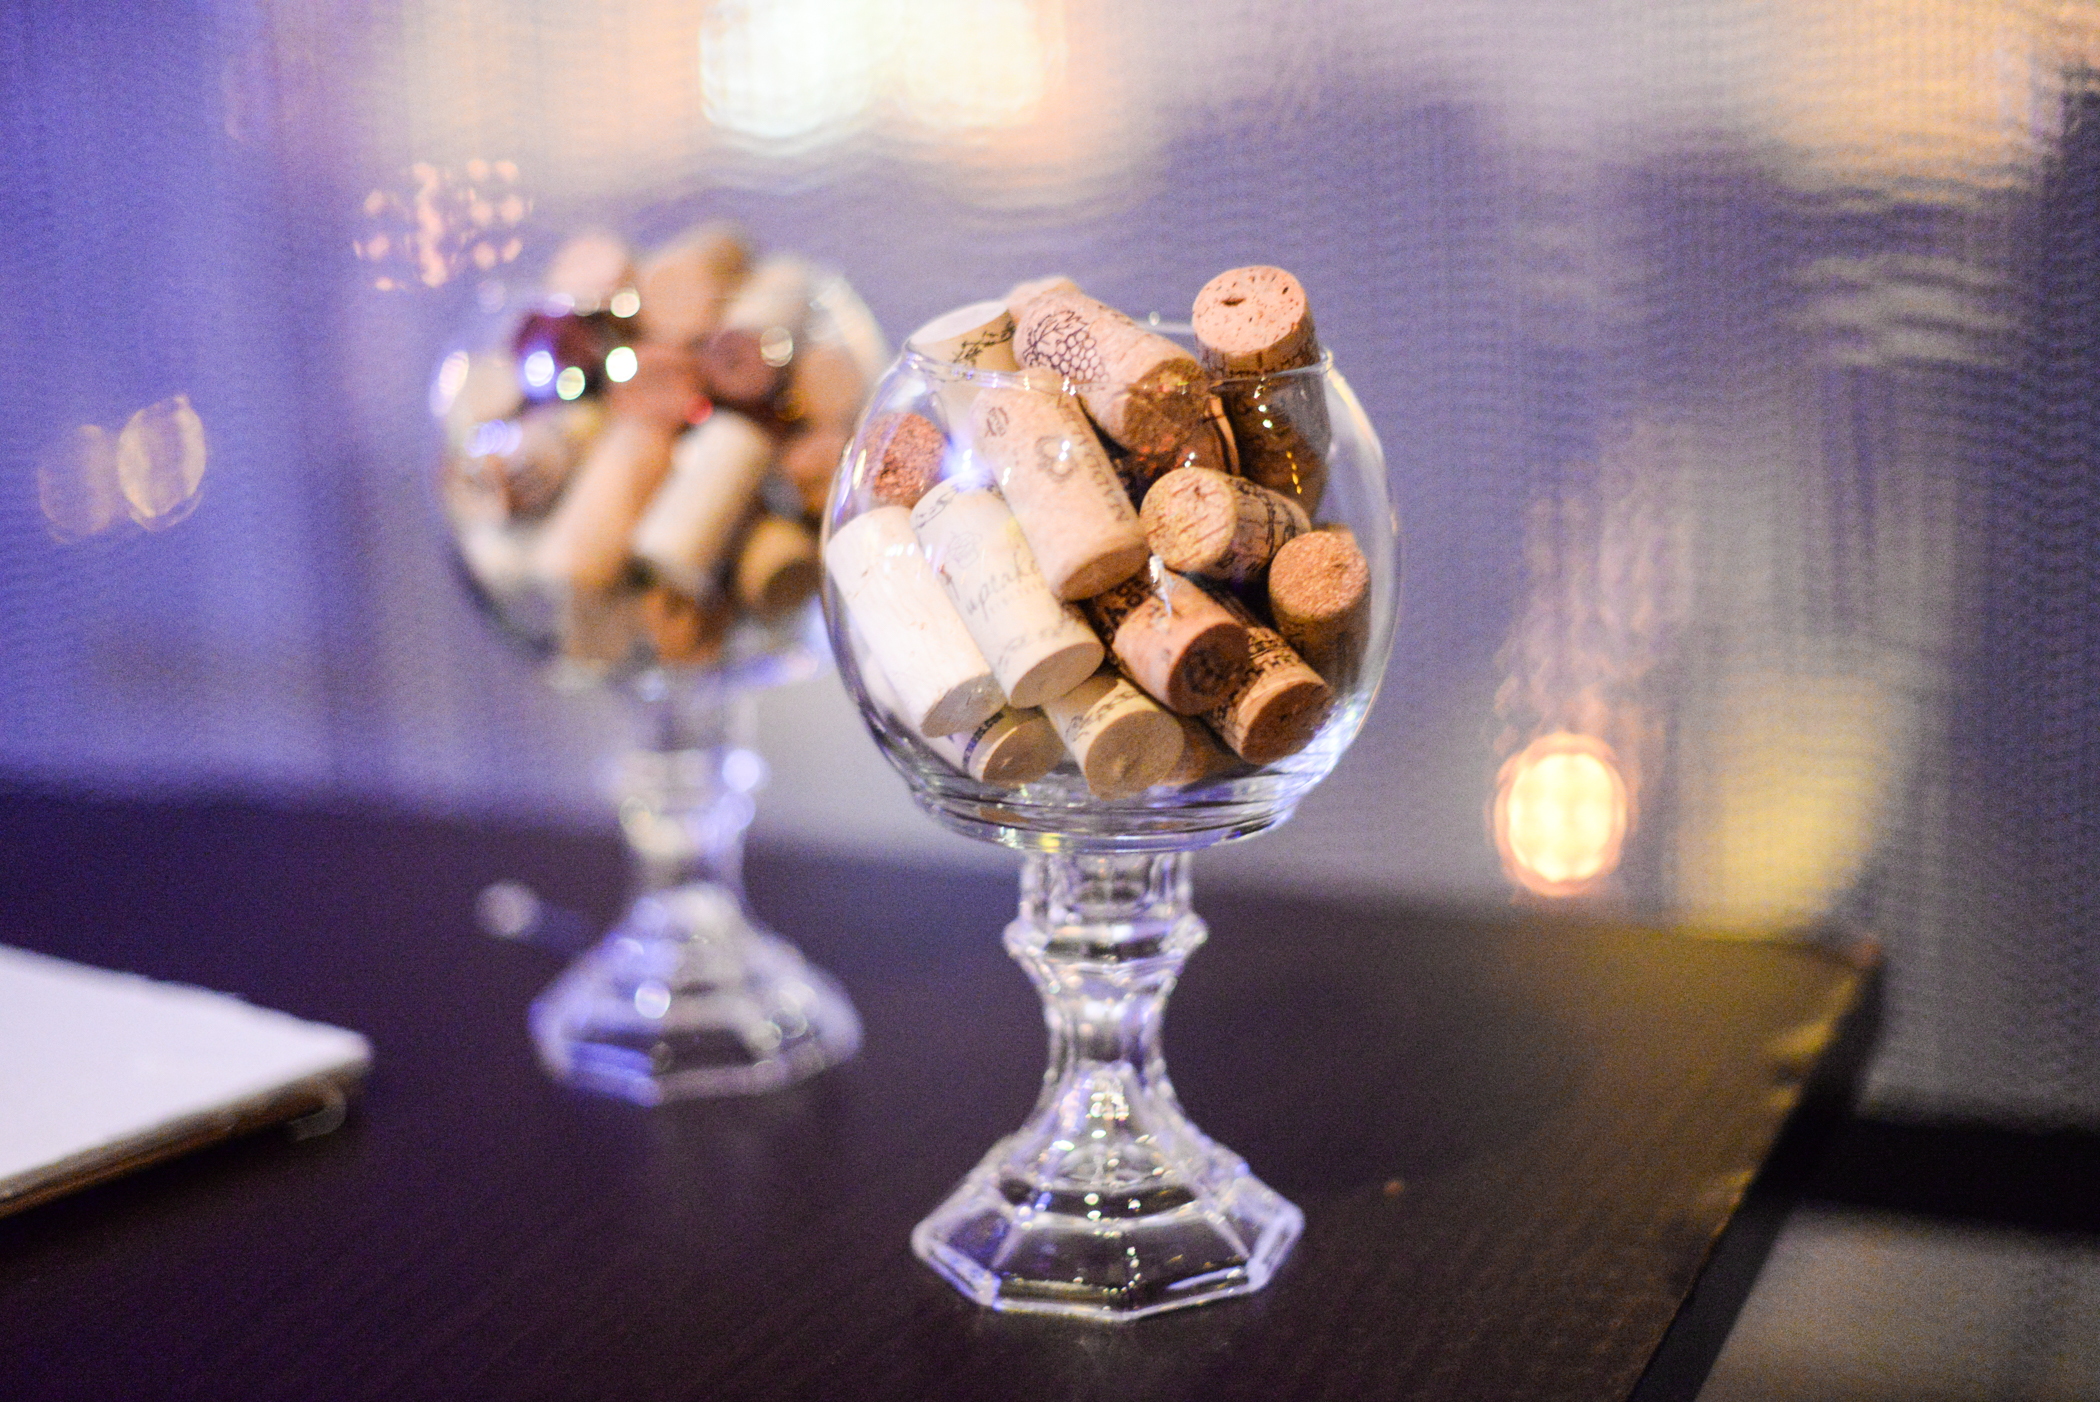 Champagne Party Details Small-23.JPG